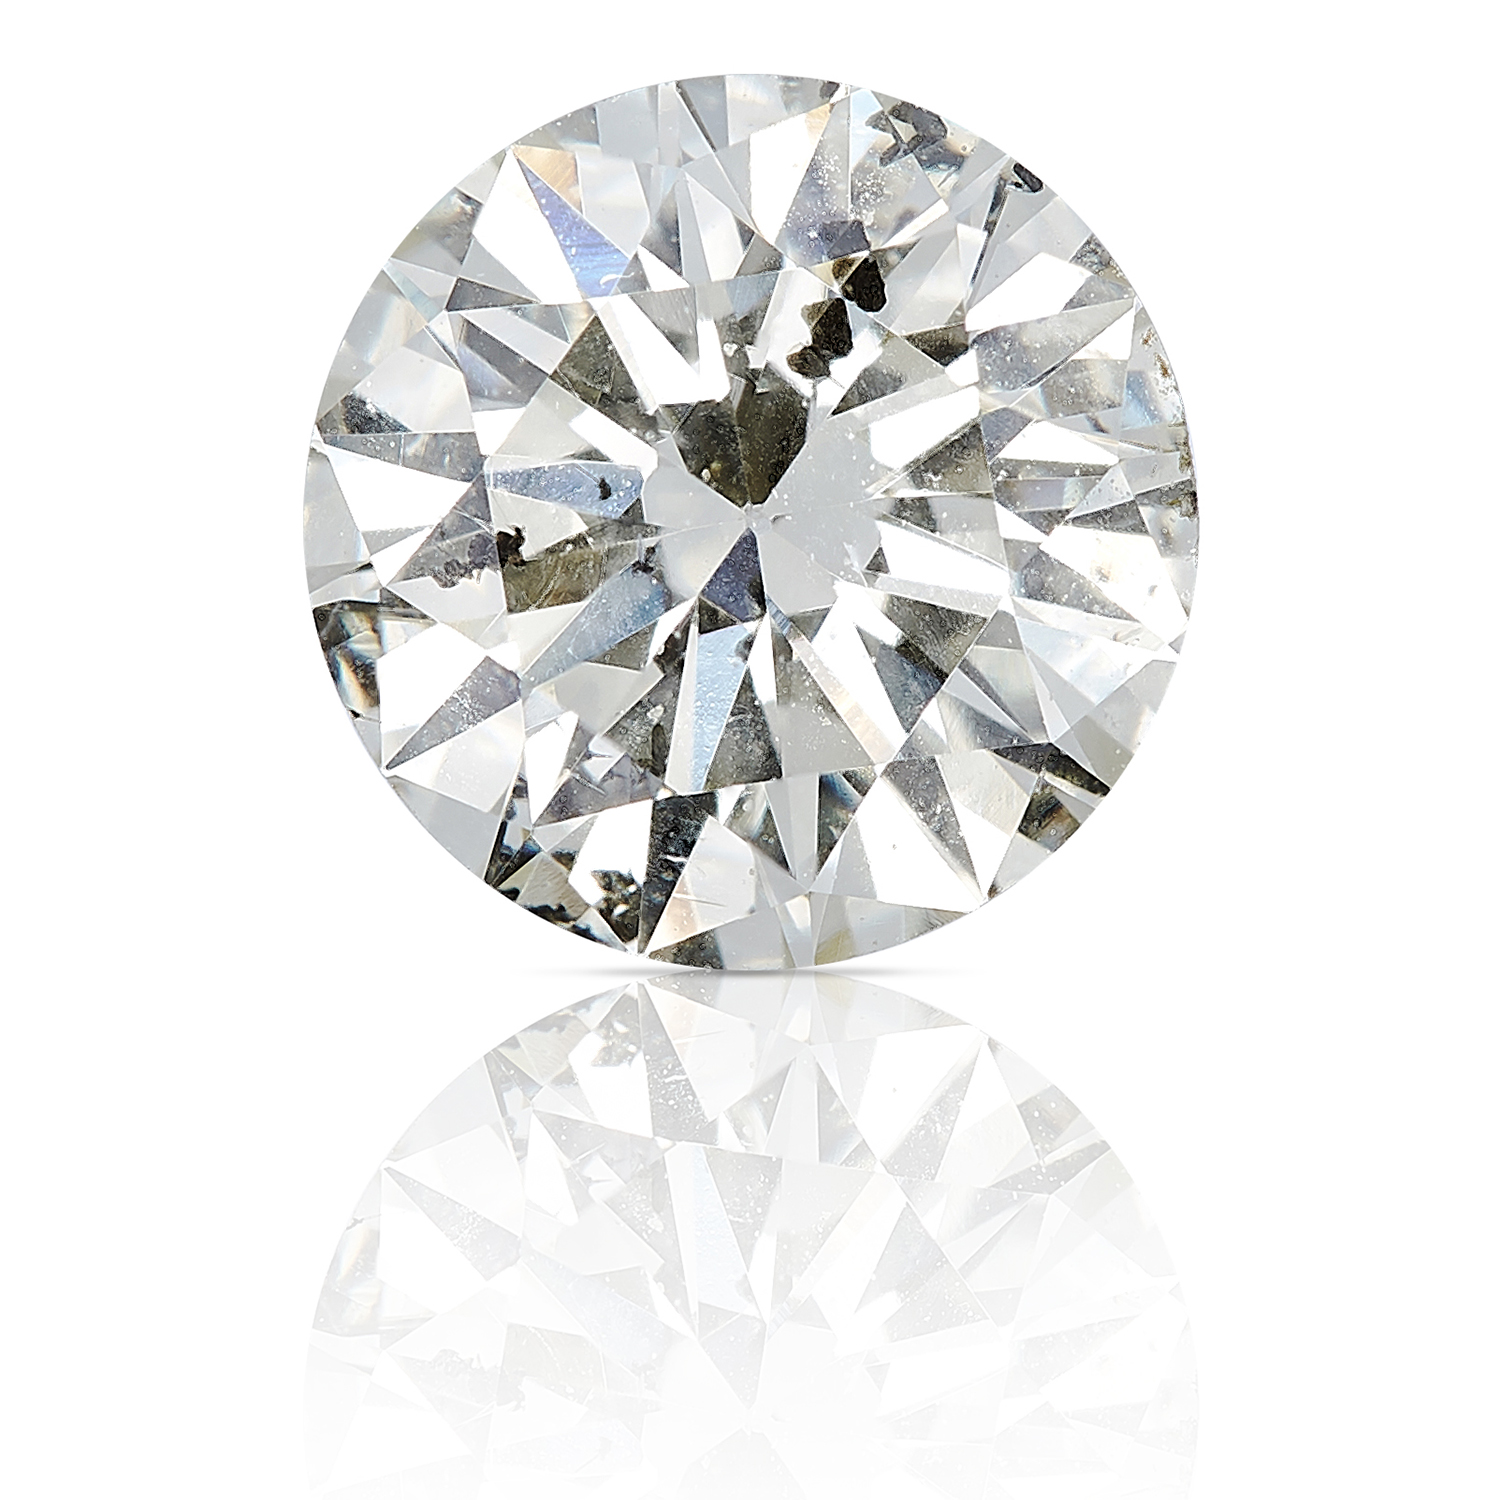 A ROUND CUT MODERN BRILLIANT DIAMOND TOTALLING 1.07cts, UNMOUNTED.